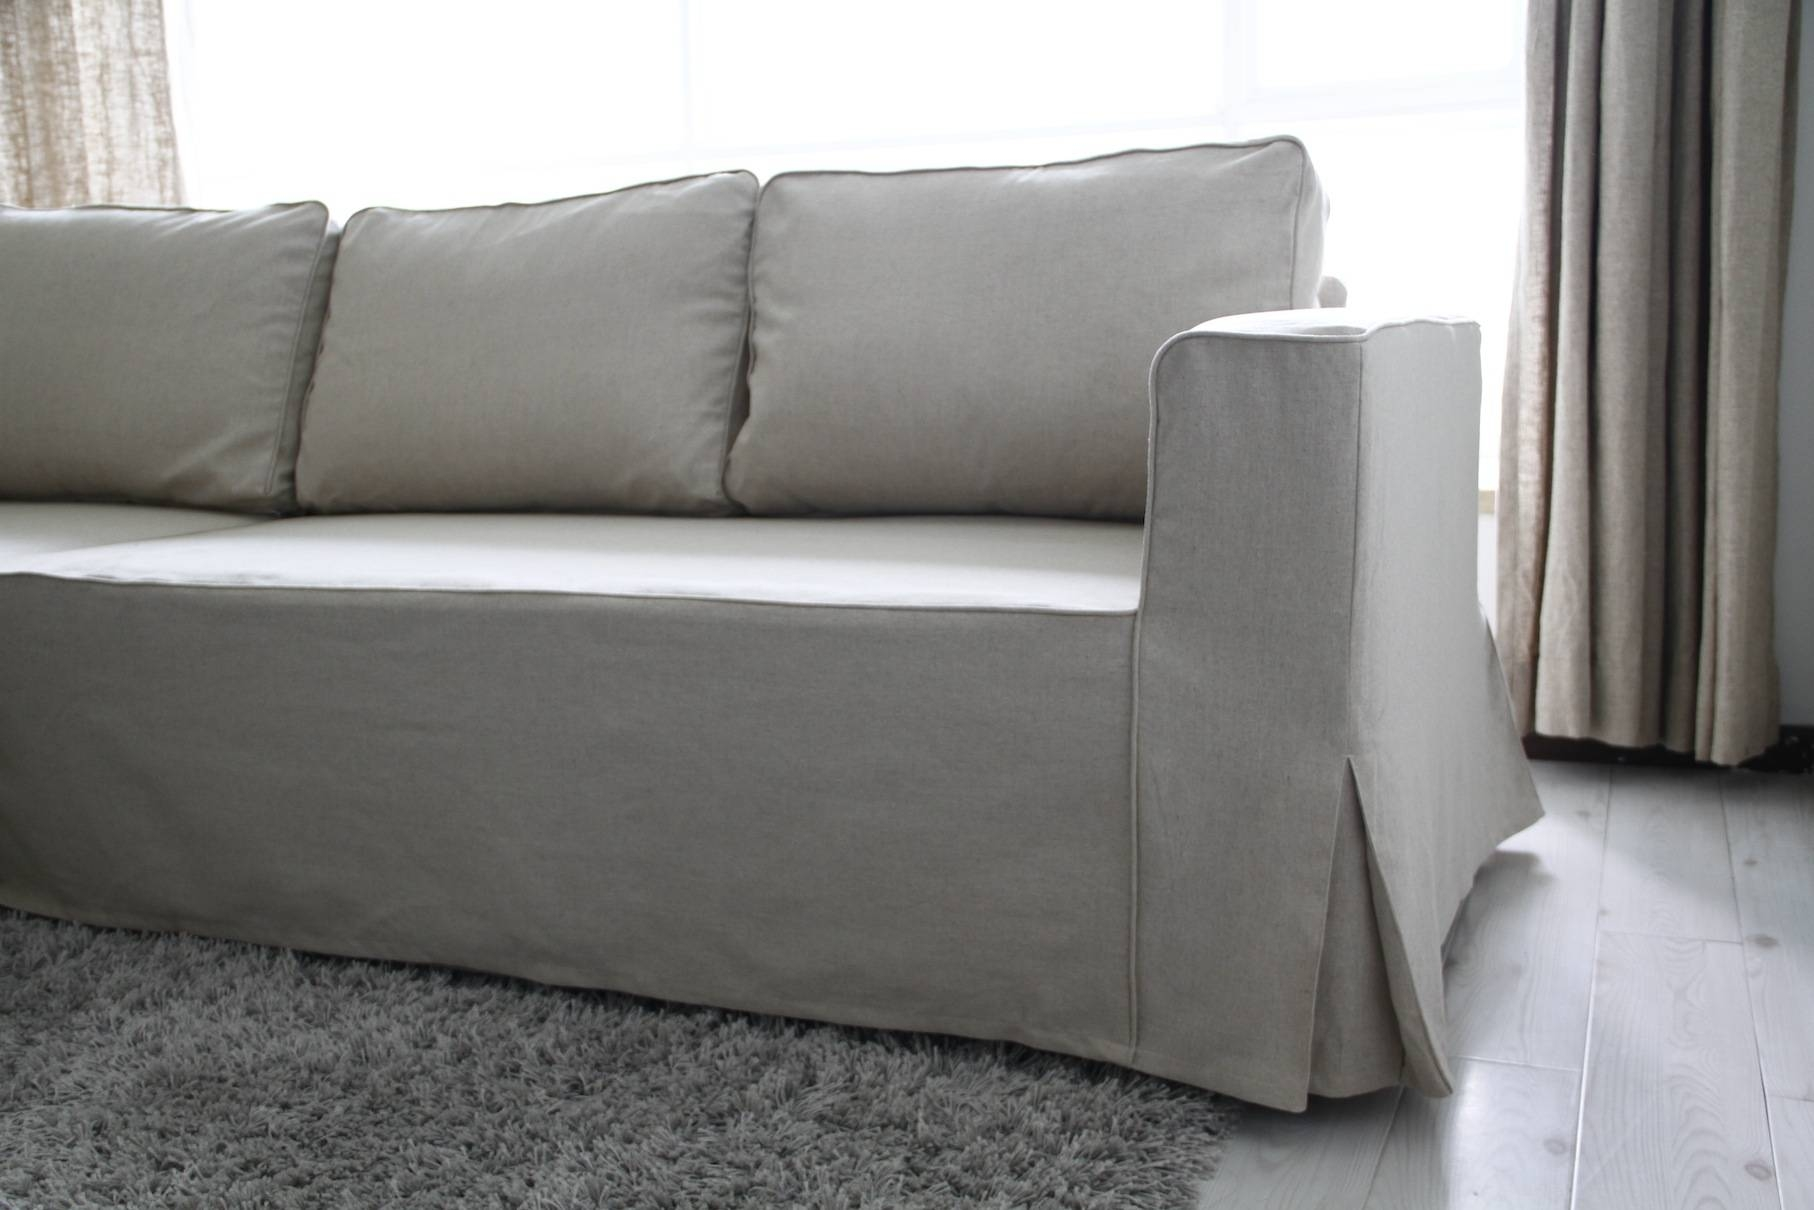 Loose Fit Linen Manstad Sofa Slipcovers Now Available Pertaining To Sofa Armchair Covers (View 25 of 30)